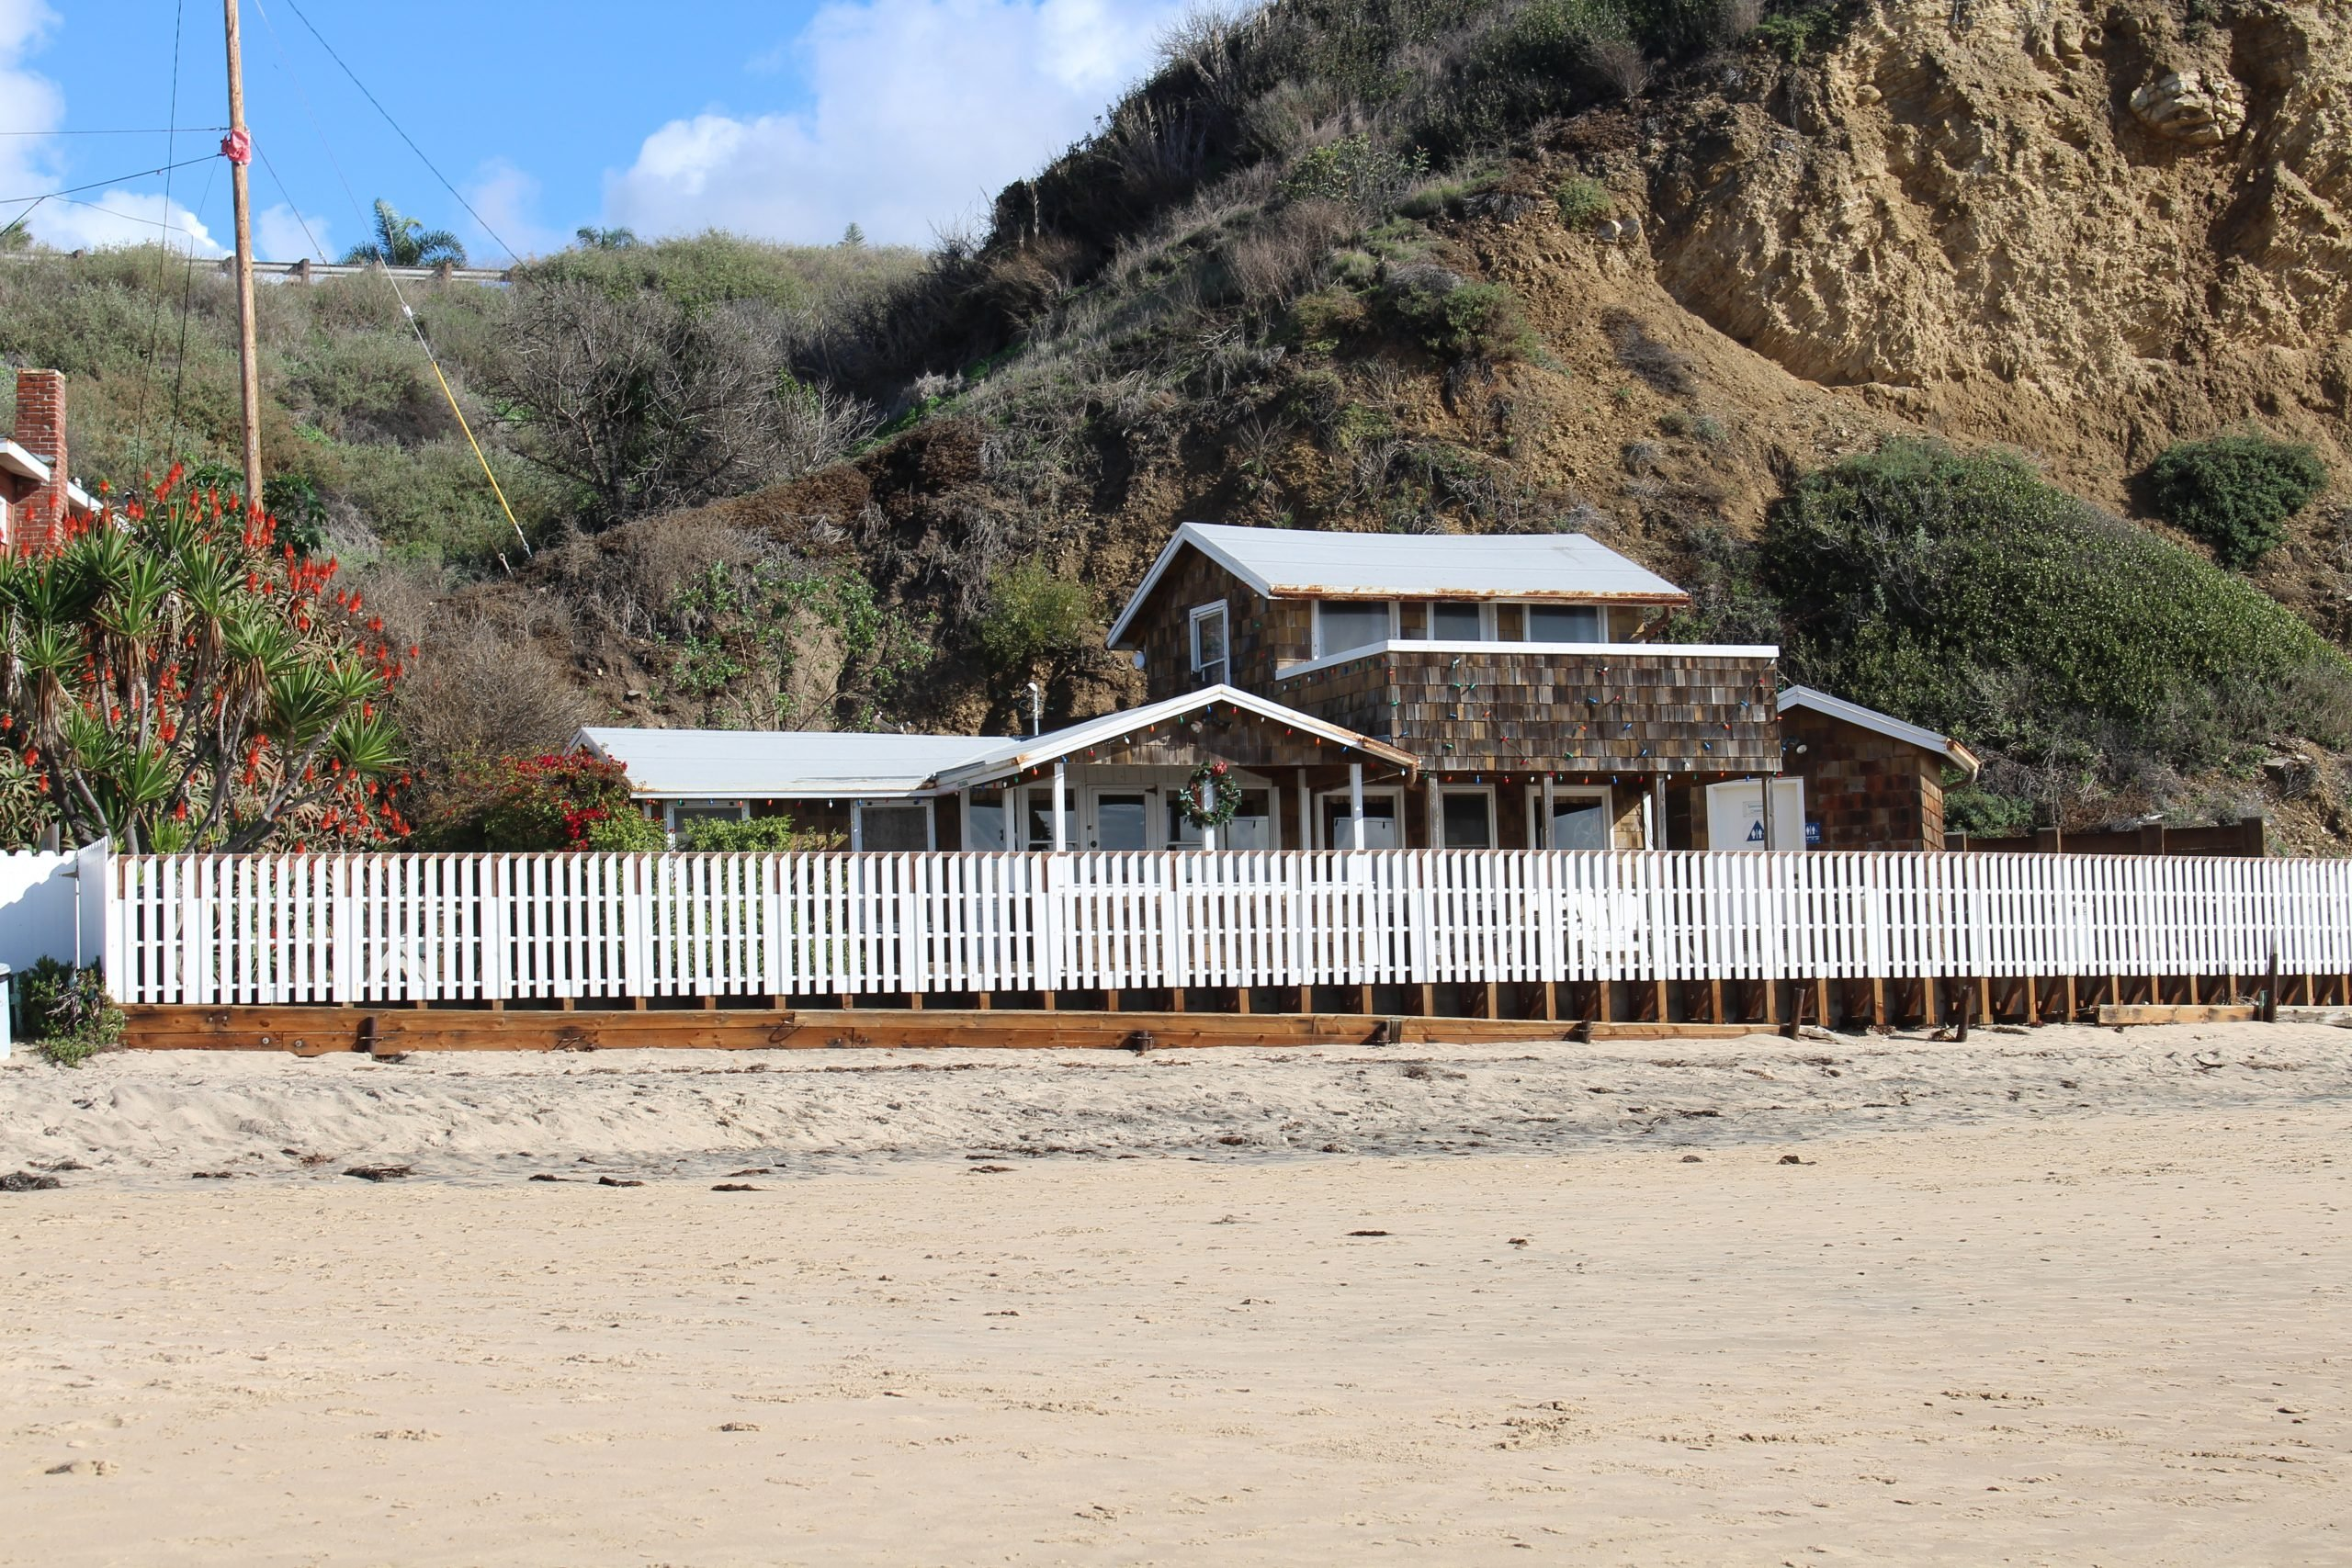 Cottage 13 at Crystal Cove Historic District scaled 25 Things You Never Knew About Beaches